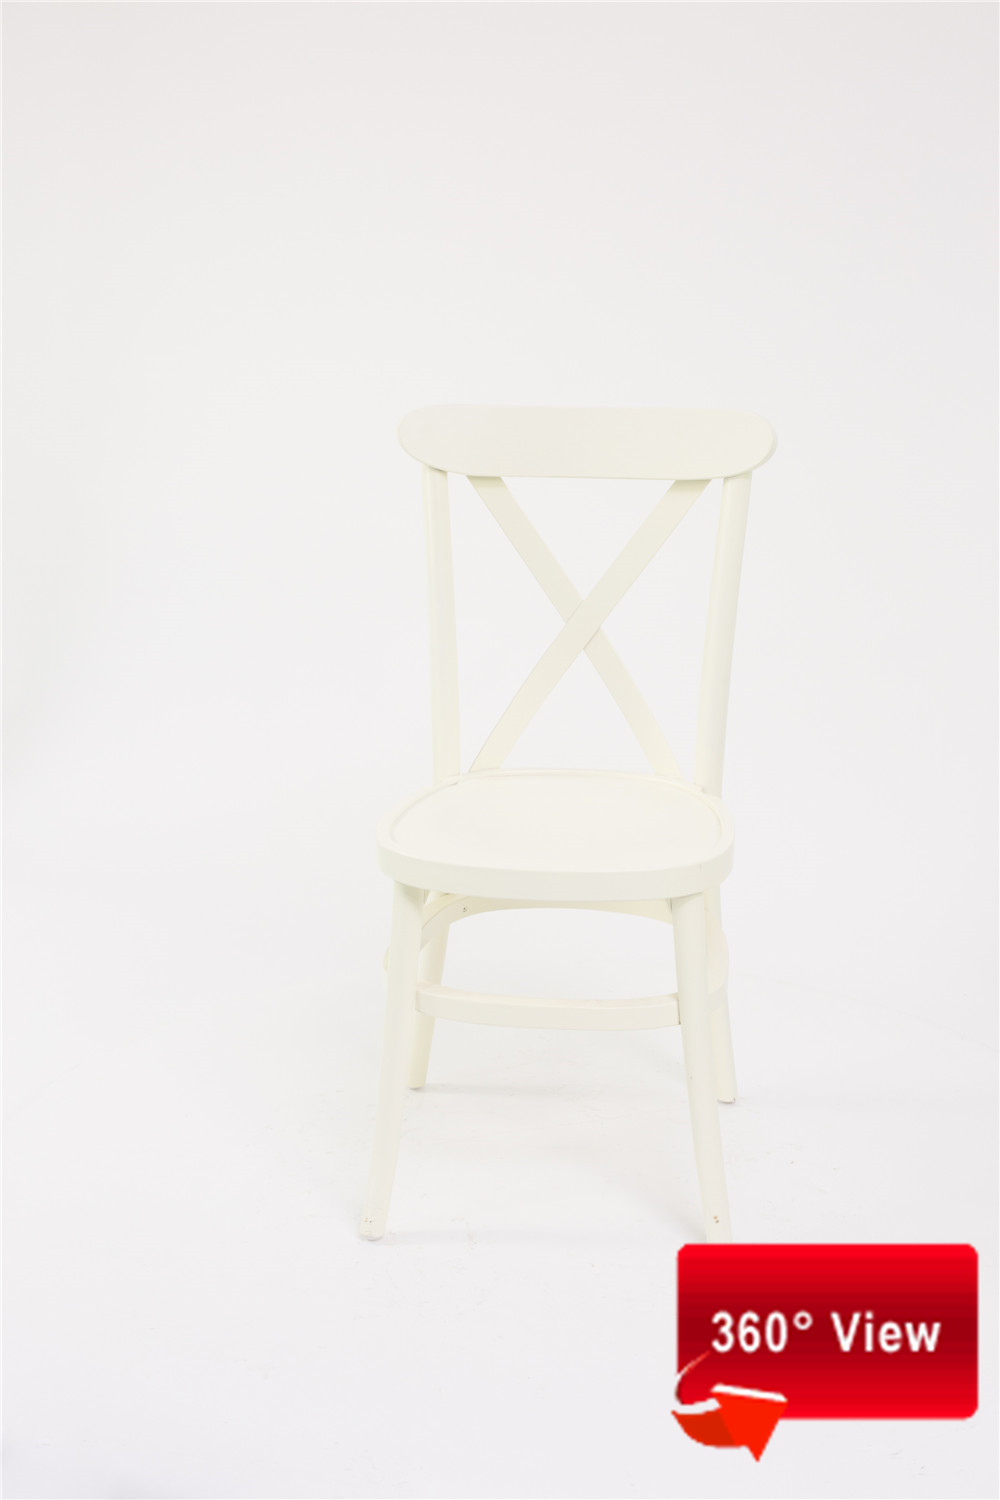 ZS-9001 WOODEN TUSCAN CHAIR